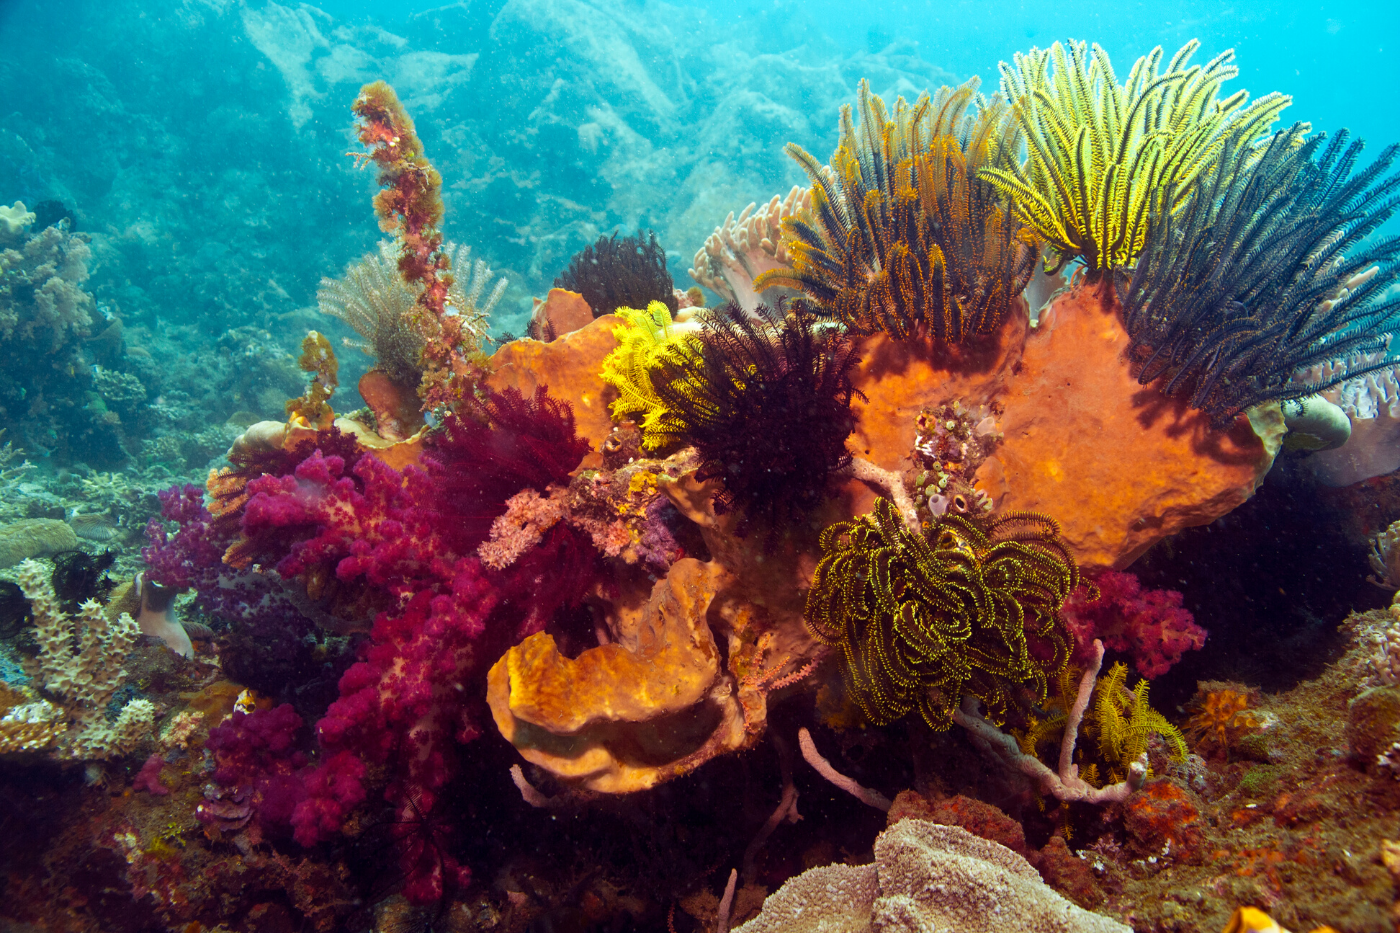 sunscreen must be reef-friendly